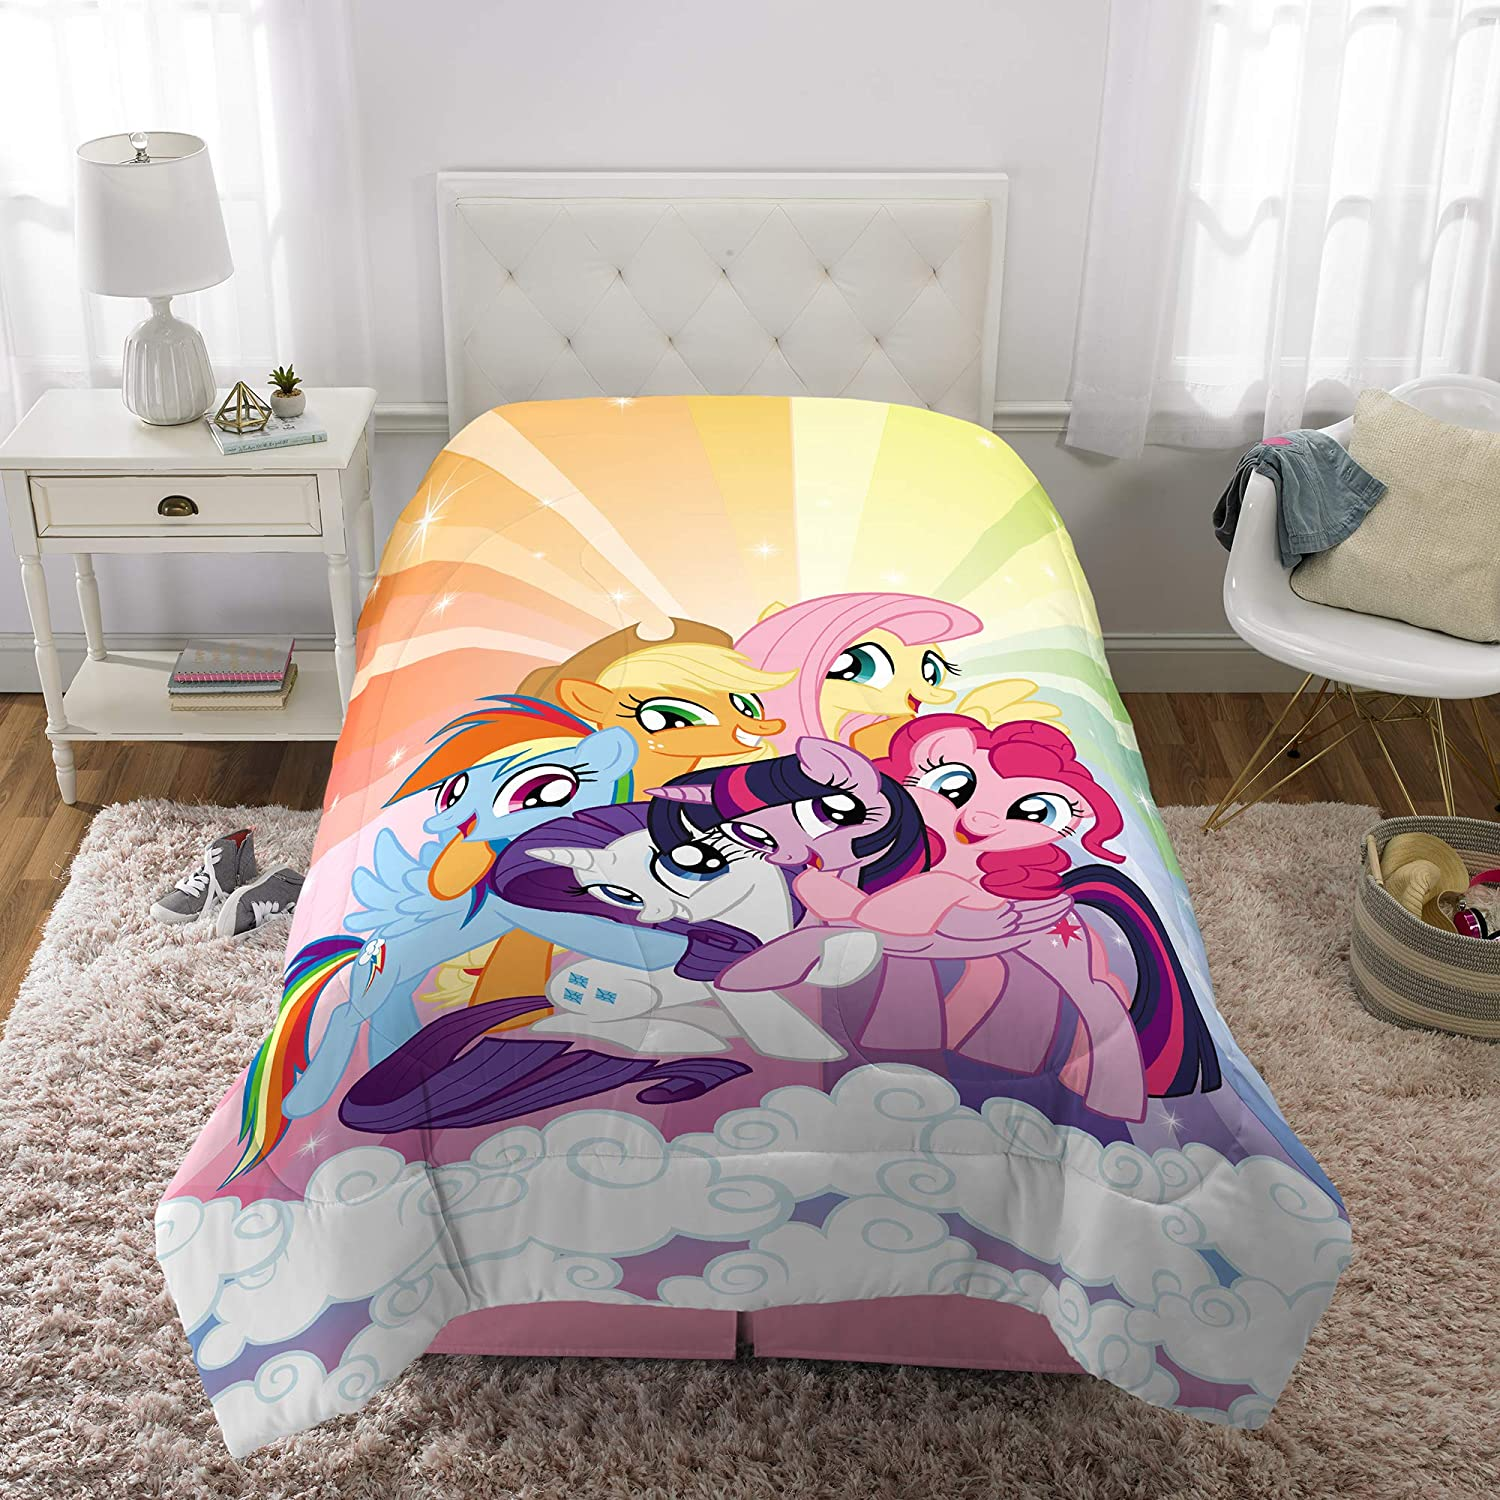 "Franco Kids Bedding Super Soft Microfiber Reversible Comforter, Twin/Full Size 72"" x 86"", My Little Pony"